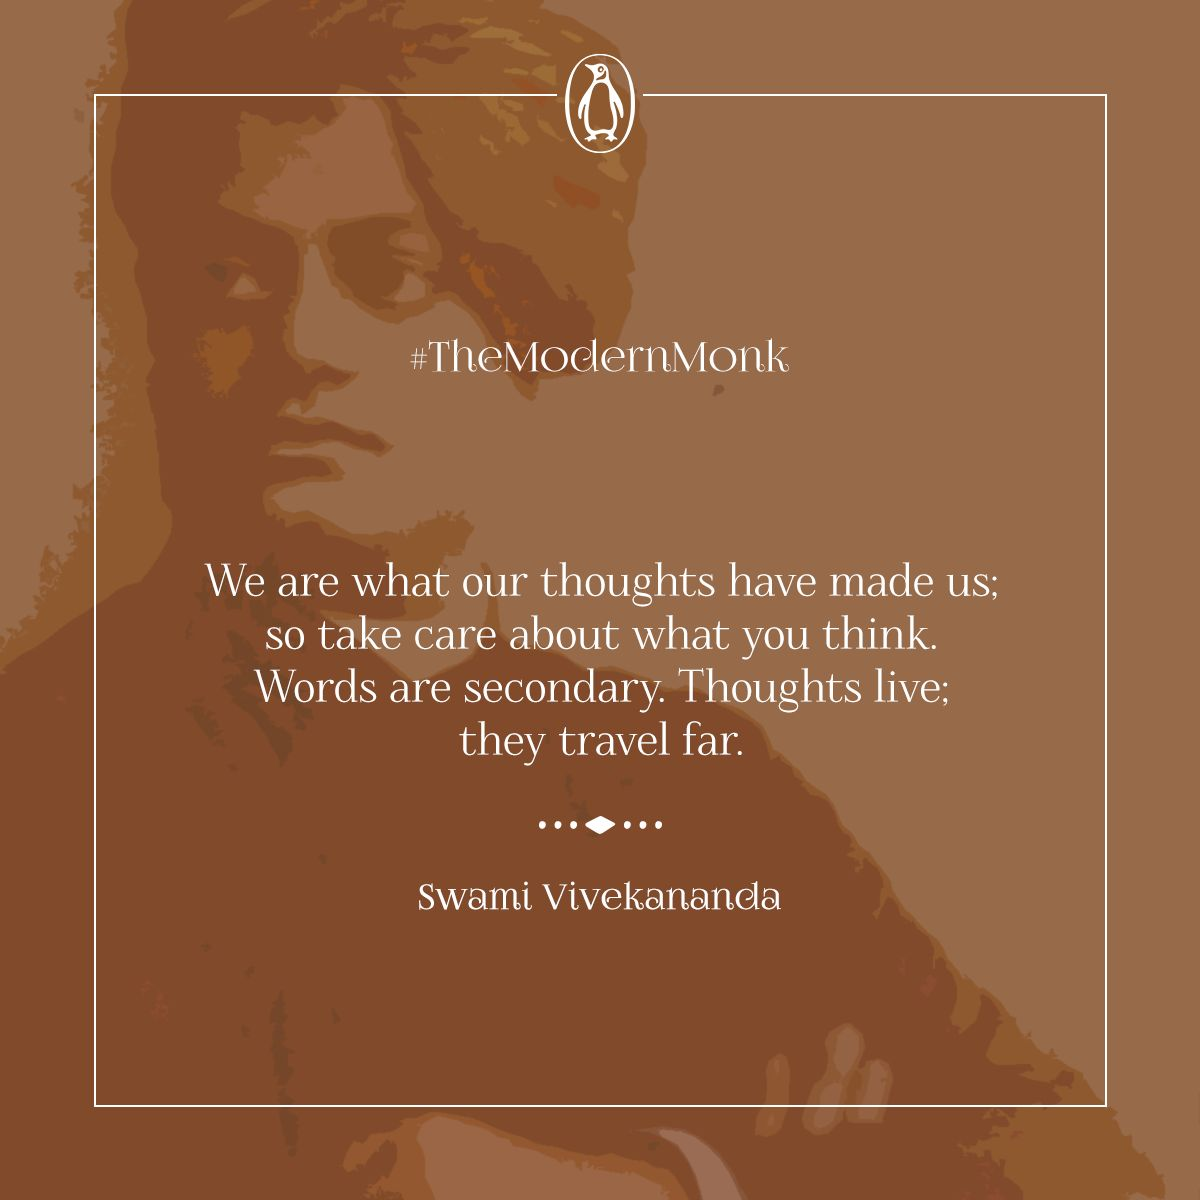 #SwamiVivekananda's thoughts make him the coolest monk we know. #TheMo...